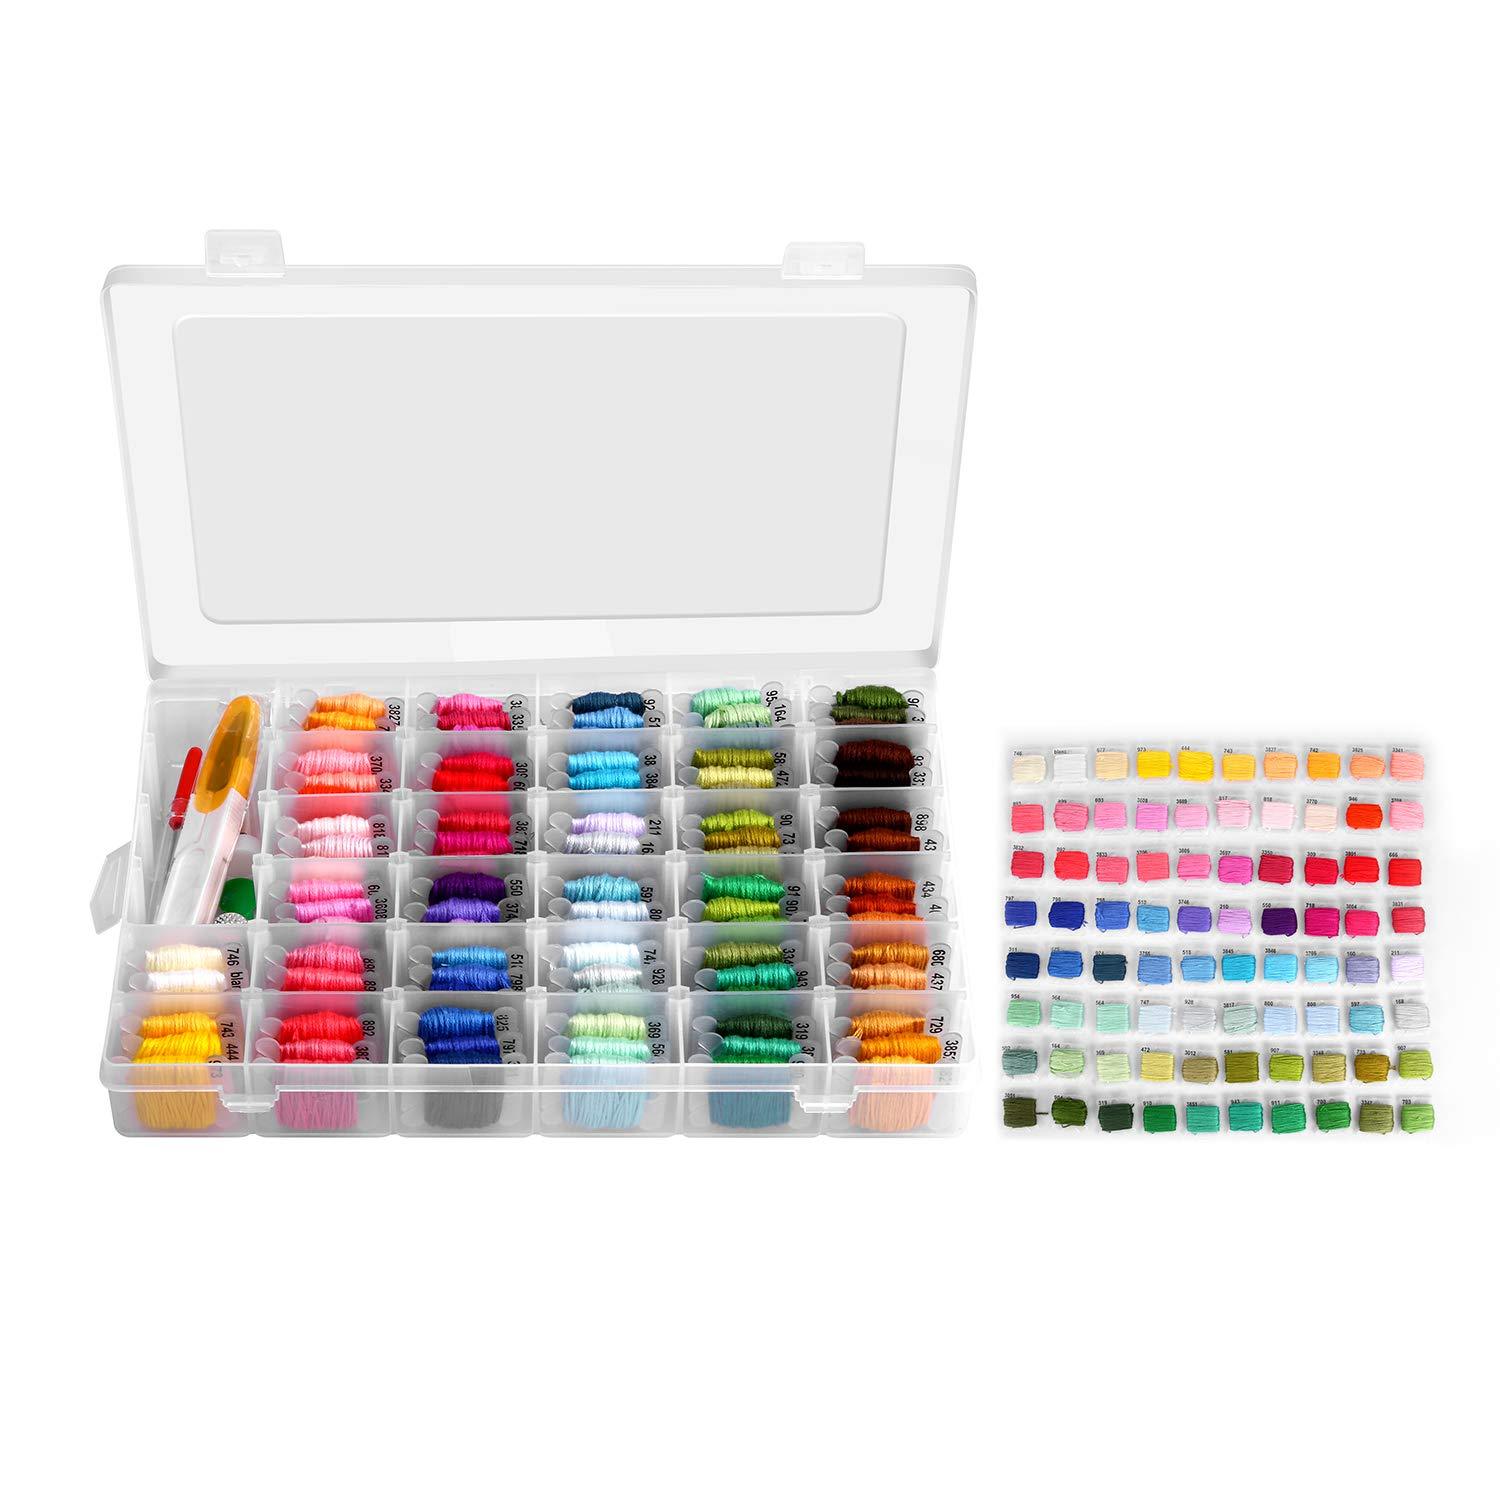 Embroidery Floss with Organizer Storage Box - 96 Colors Friendship Bracelets String Embroidery Thread with Number Stickers and Plastic Floss Bobbins - Rainbow Cross Stitch Kits Alloyseed